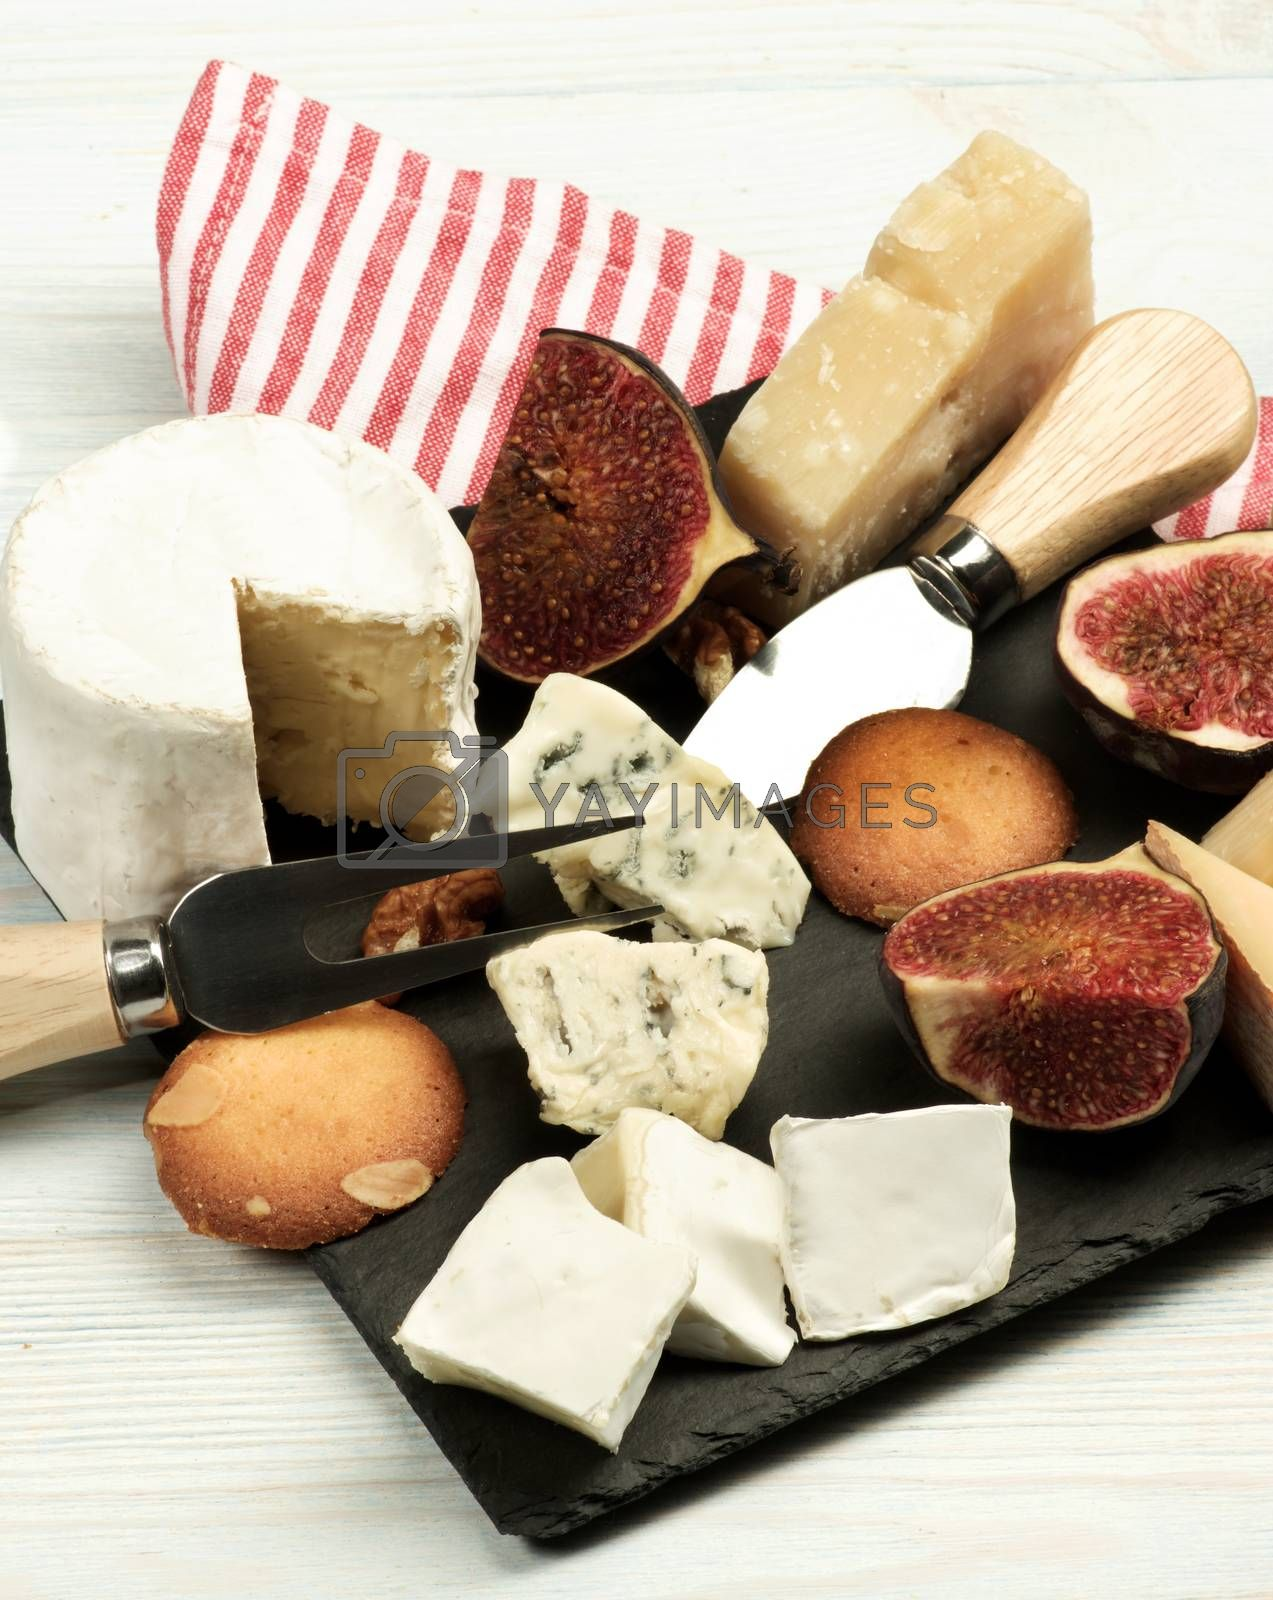 Arrangement of Gourmet Cheese with Brie, Parmesan, Roquefort and Camembert and Figs with Biscuits on Slate Plate closeup on Wooden background